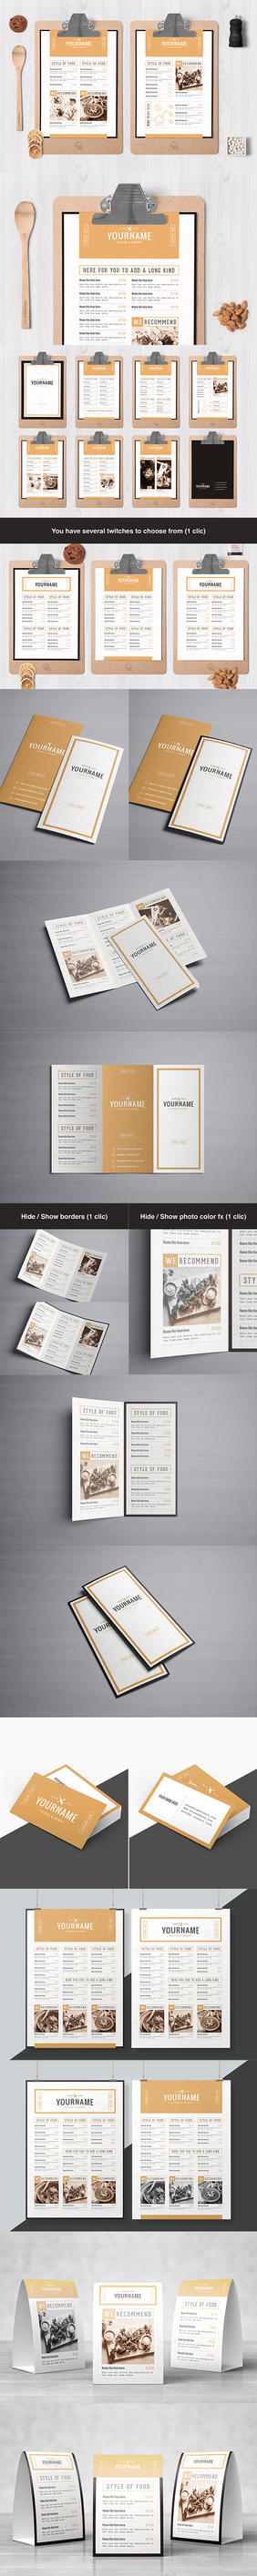 Classy Food Menu 8 Template by luuqas